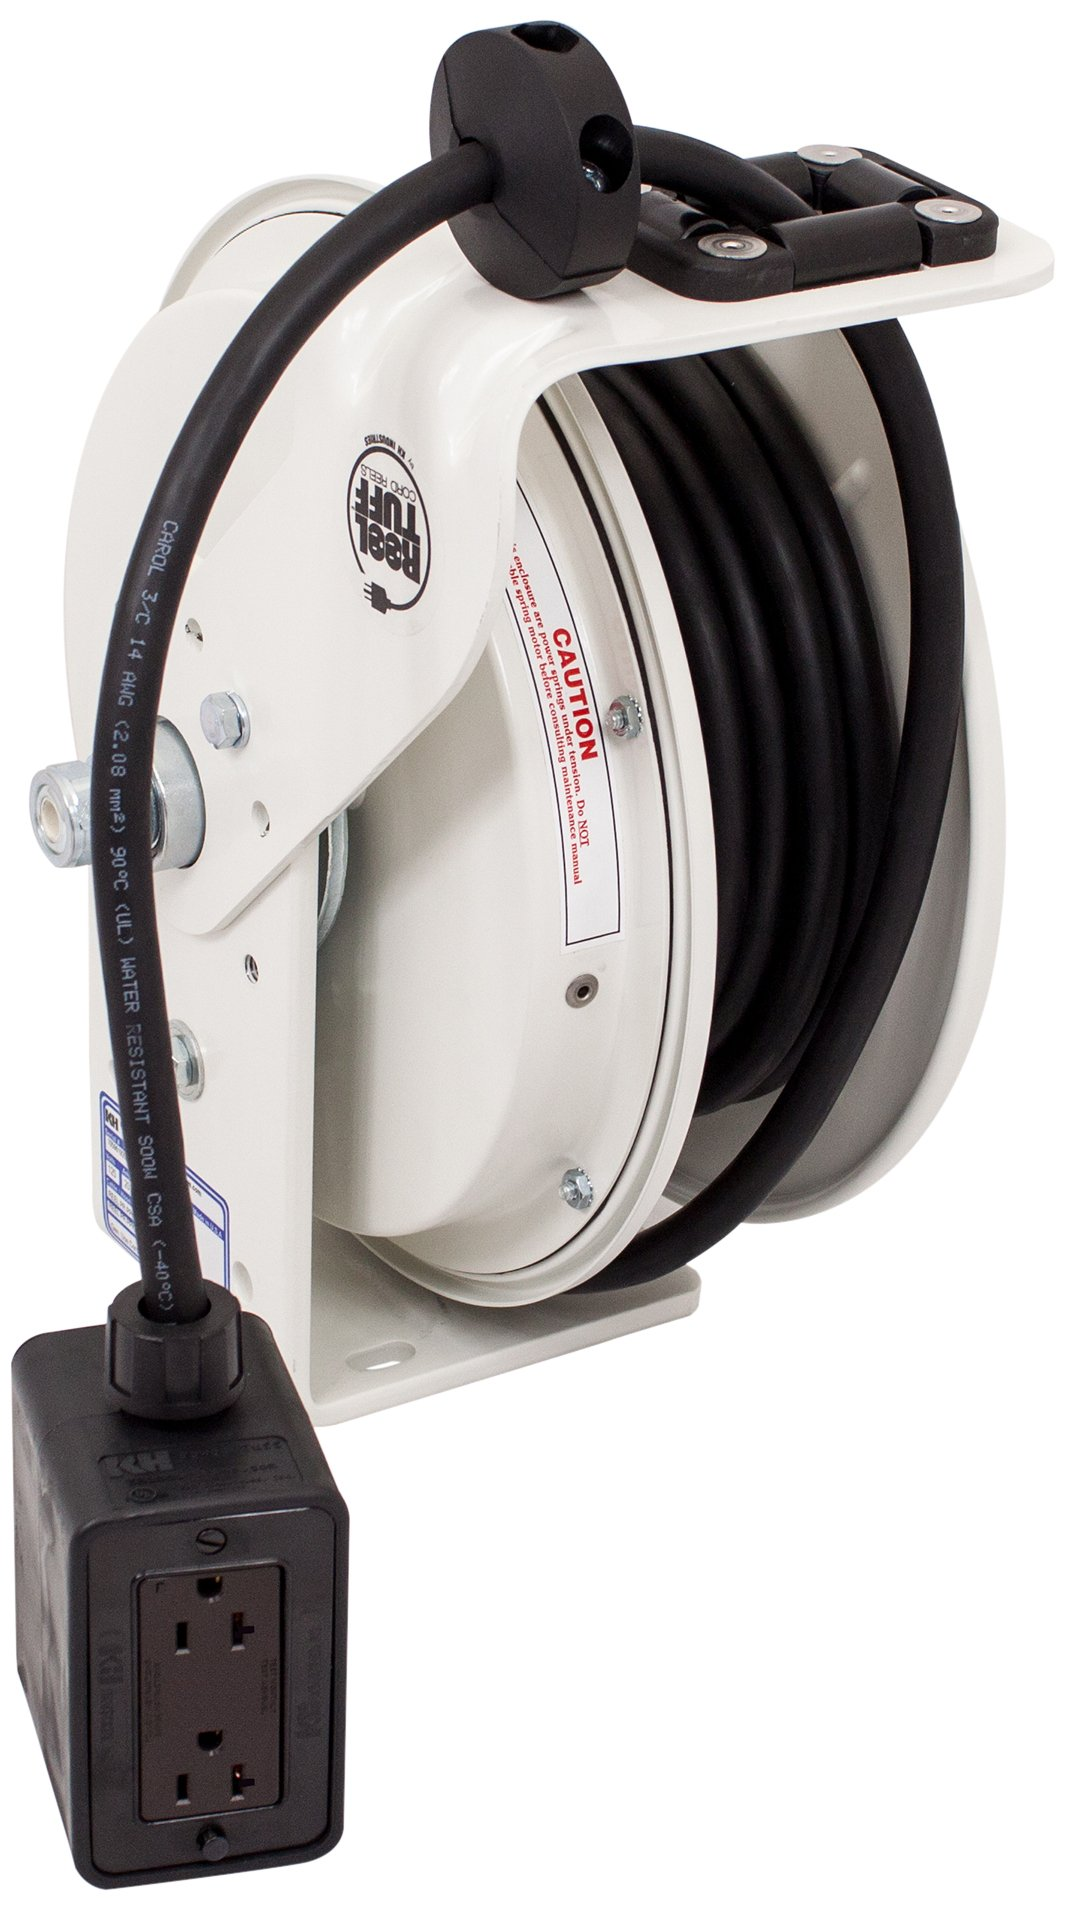 KH Industries RTB Series ReelTuff Power Cord Reel, 12/3 SJOW Black Cable and Four Receptacle Outlet Box, 20 Amp, 50' Length, White Powder Coat Finish by KH Industries